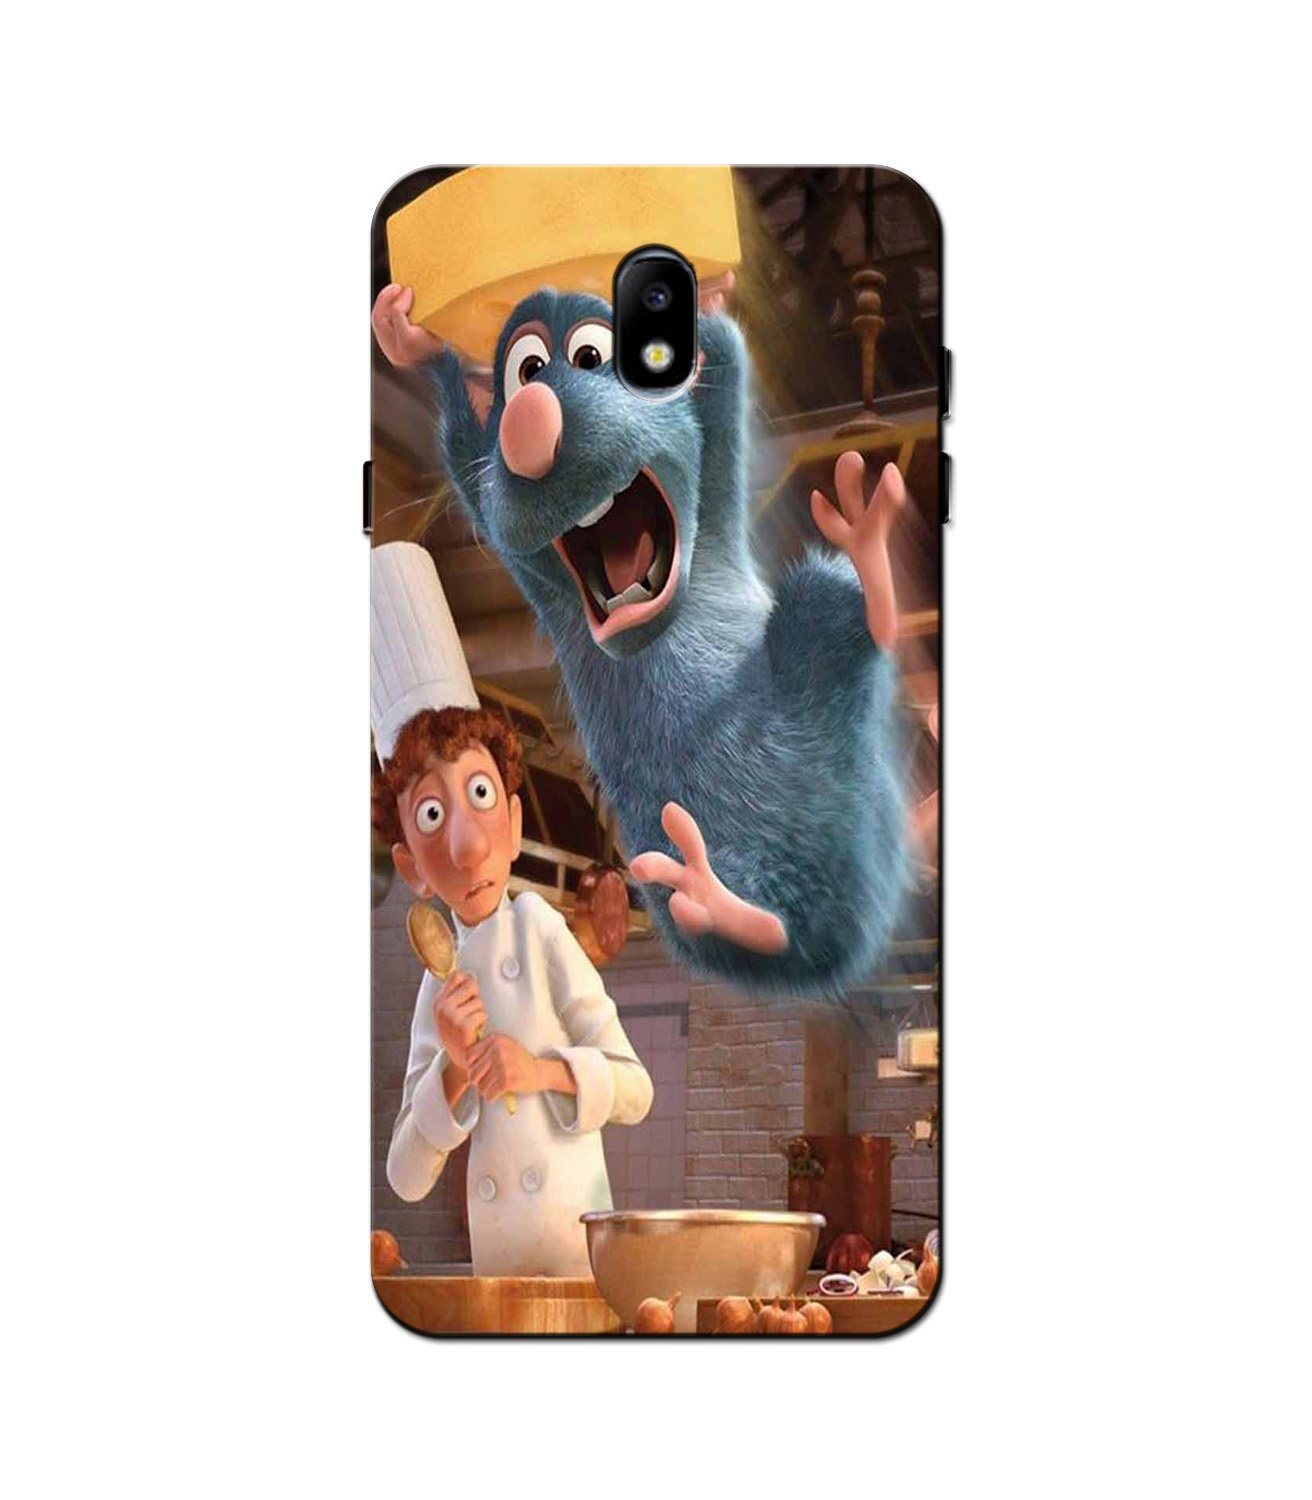 Ratatouille Mobile Back Case for Galaxy J5 Pro  (Design - 347)